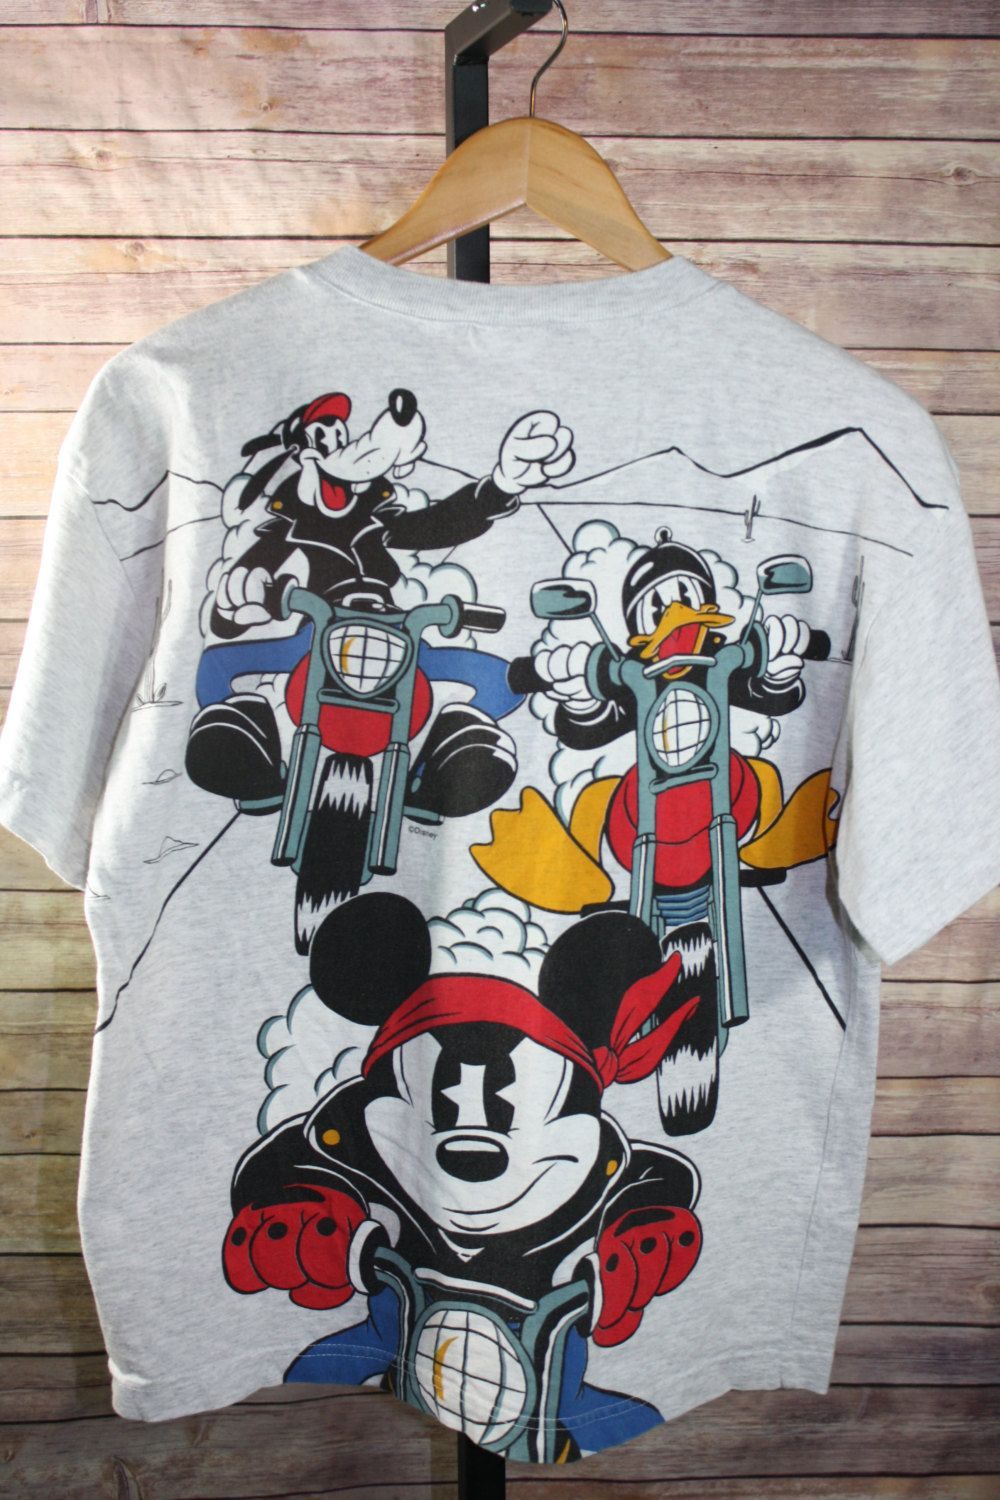 88e5e732f4a Vintage Disney Mickey Mouse And Co. Motorcycle T-Shirt Youth XL Gray 1 4  Button Cotton Goofy Daffy Duck Mickey by JuliaJaneVintage on Etsy